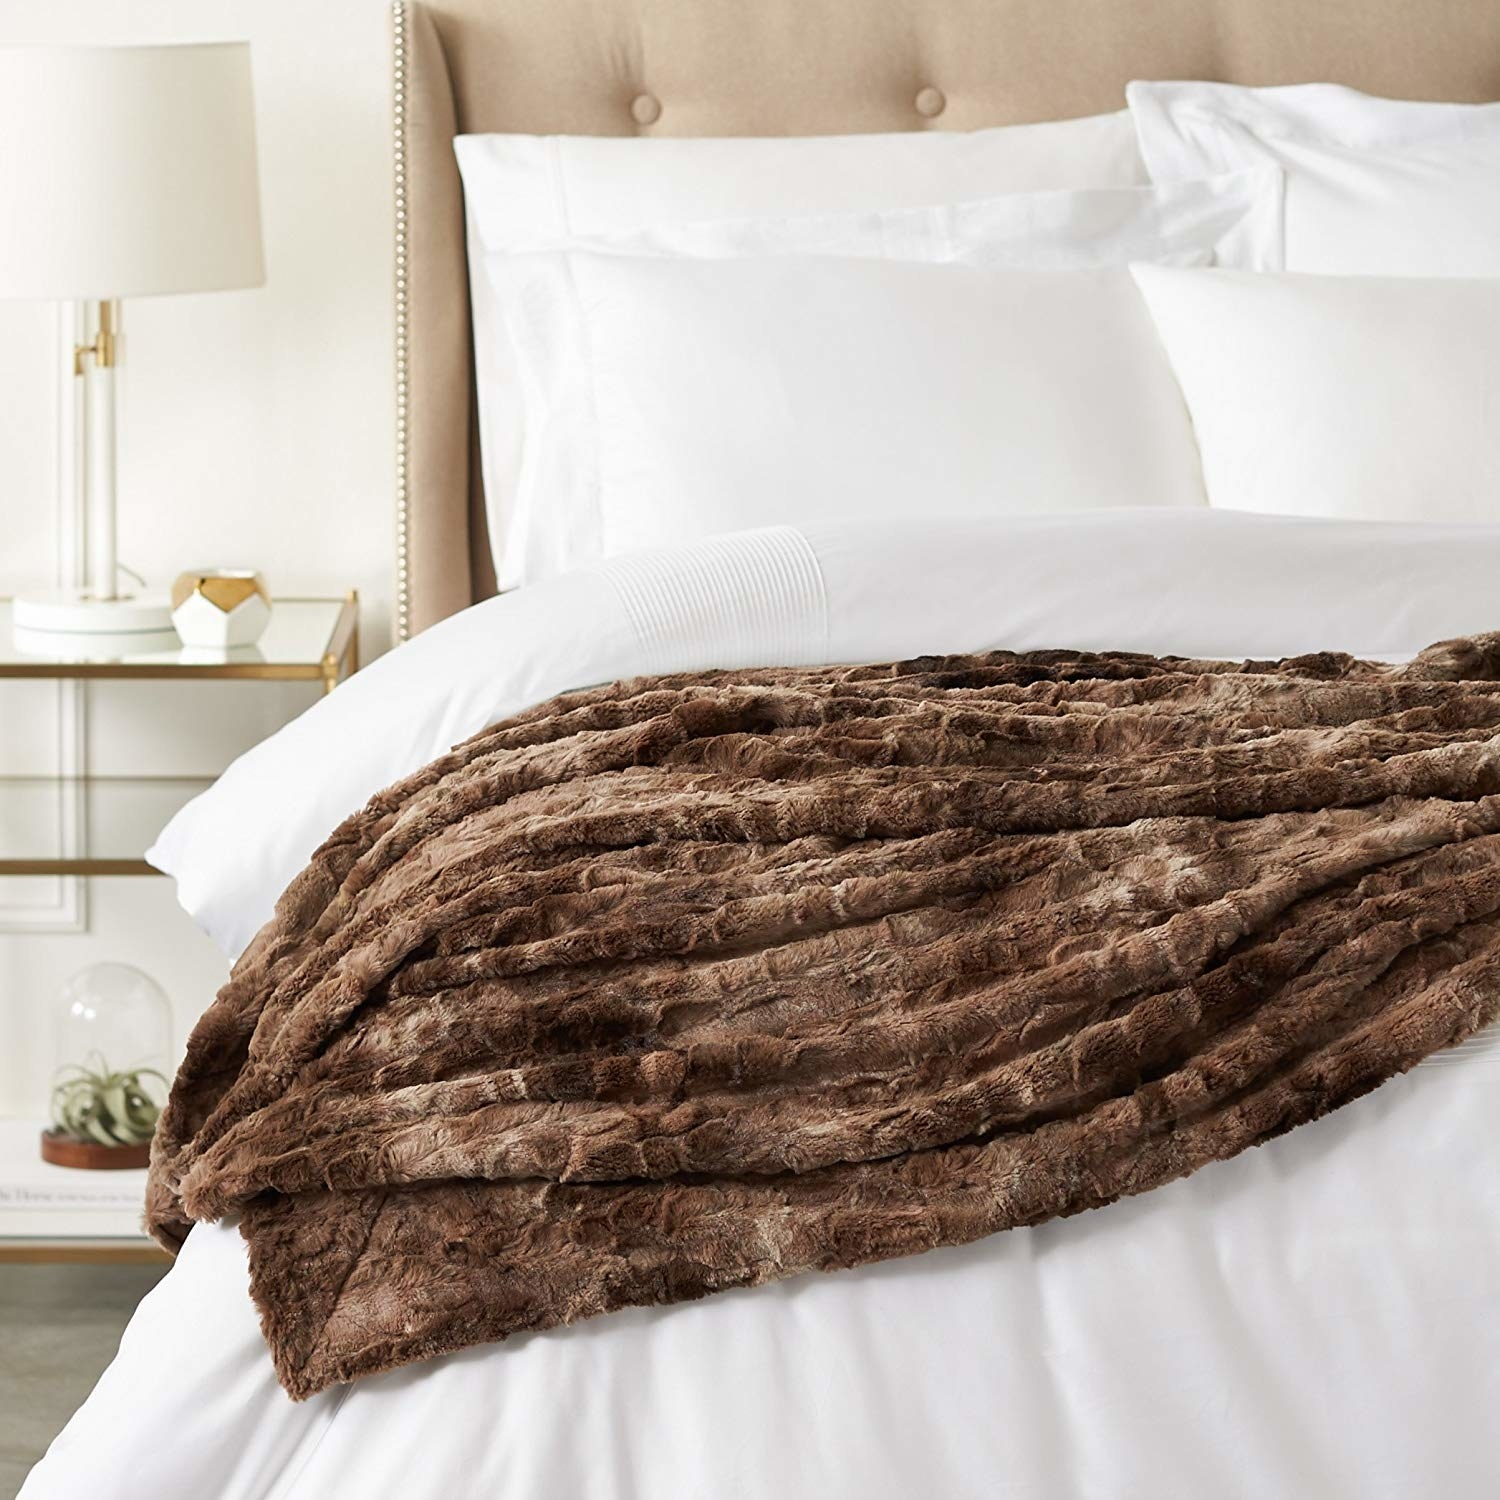 brown faux fur blanket thrown on top of made bed